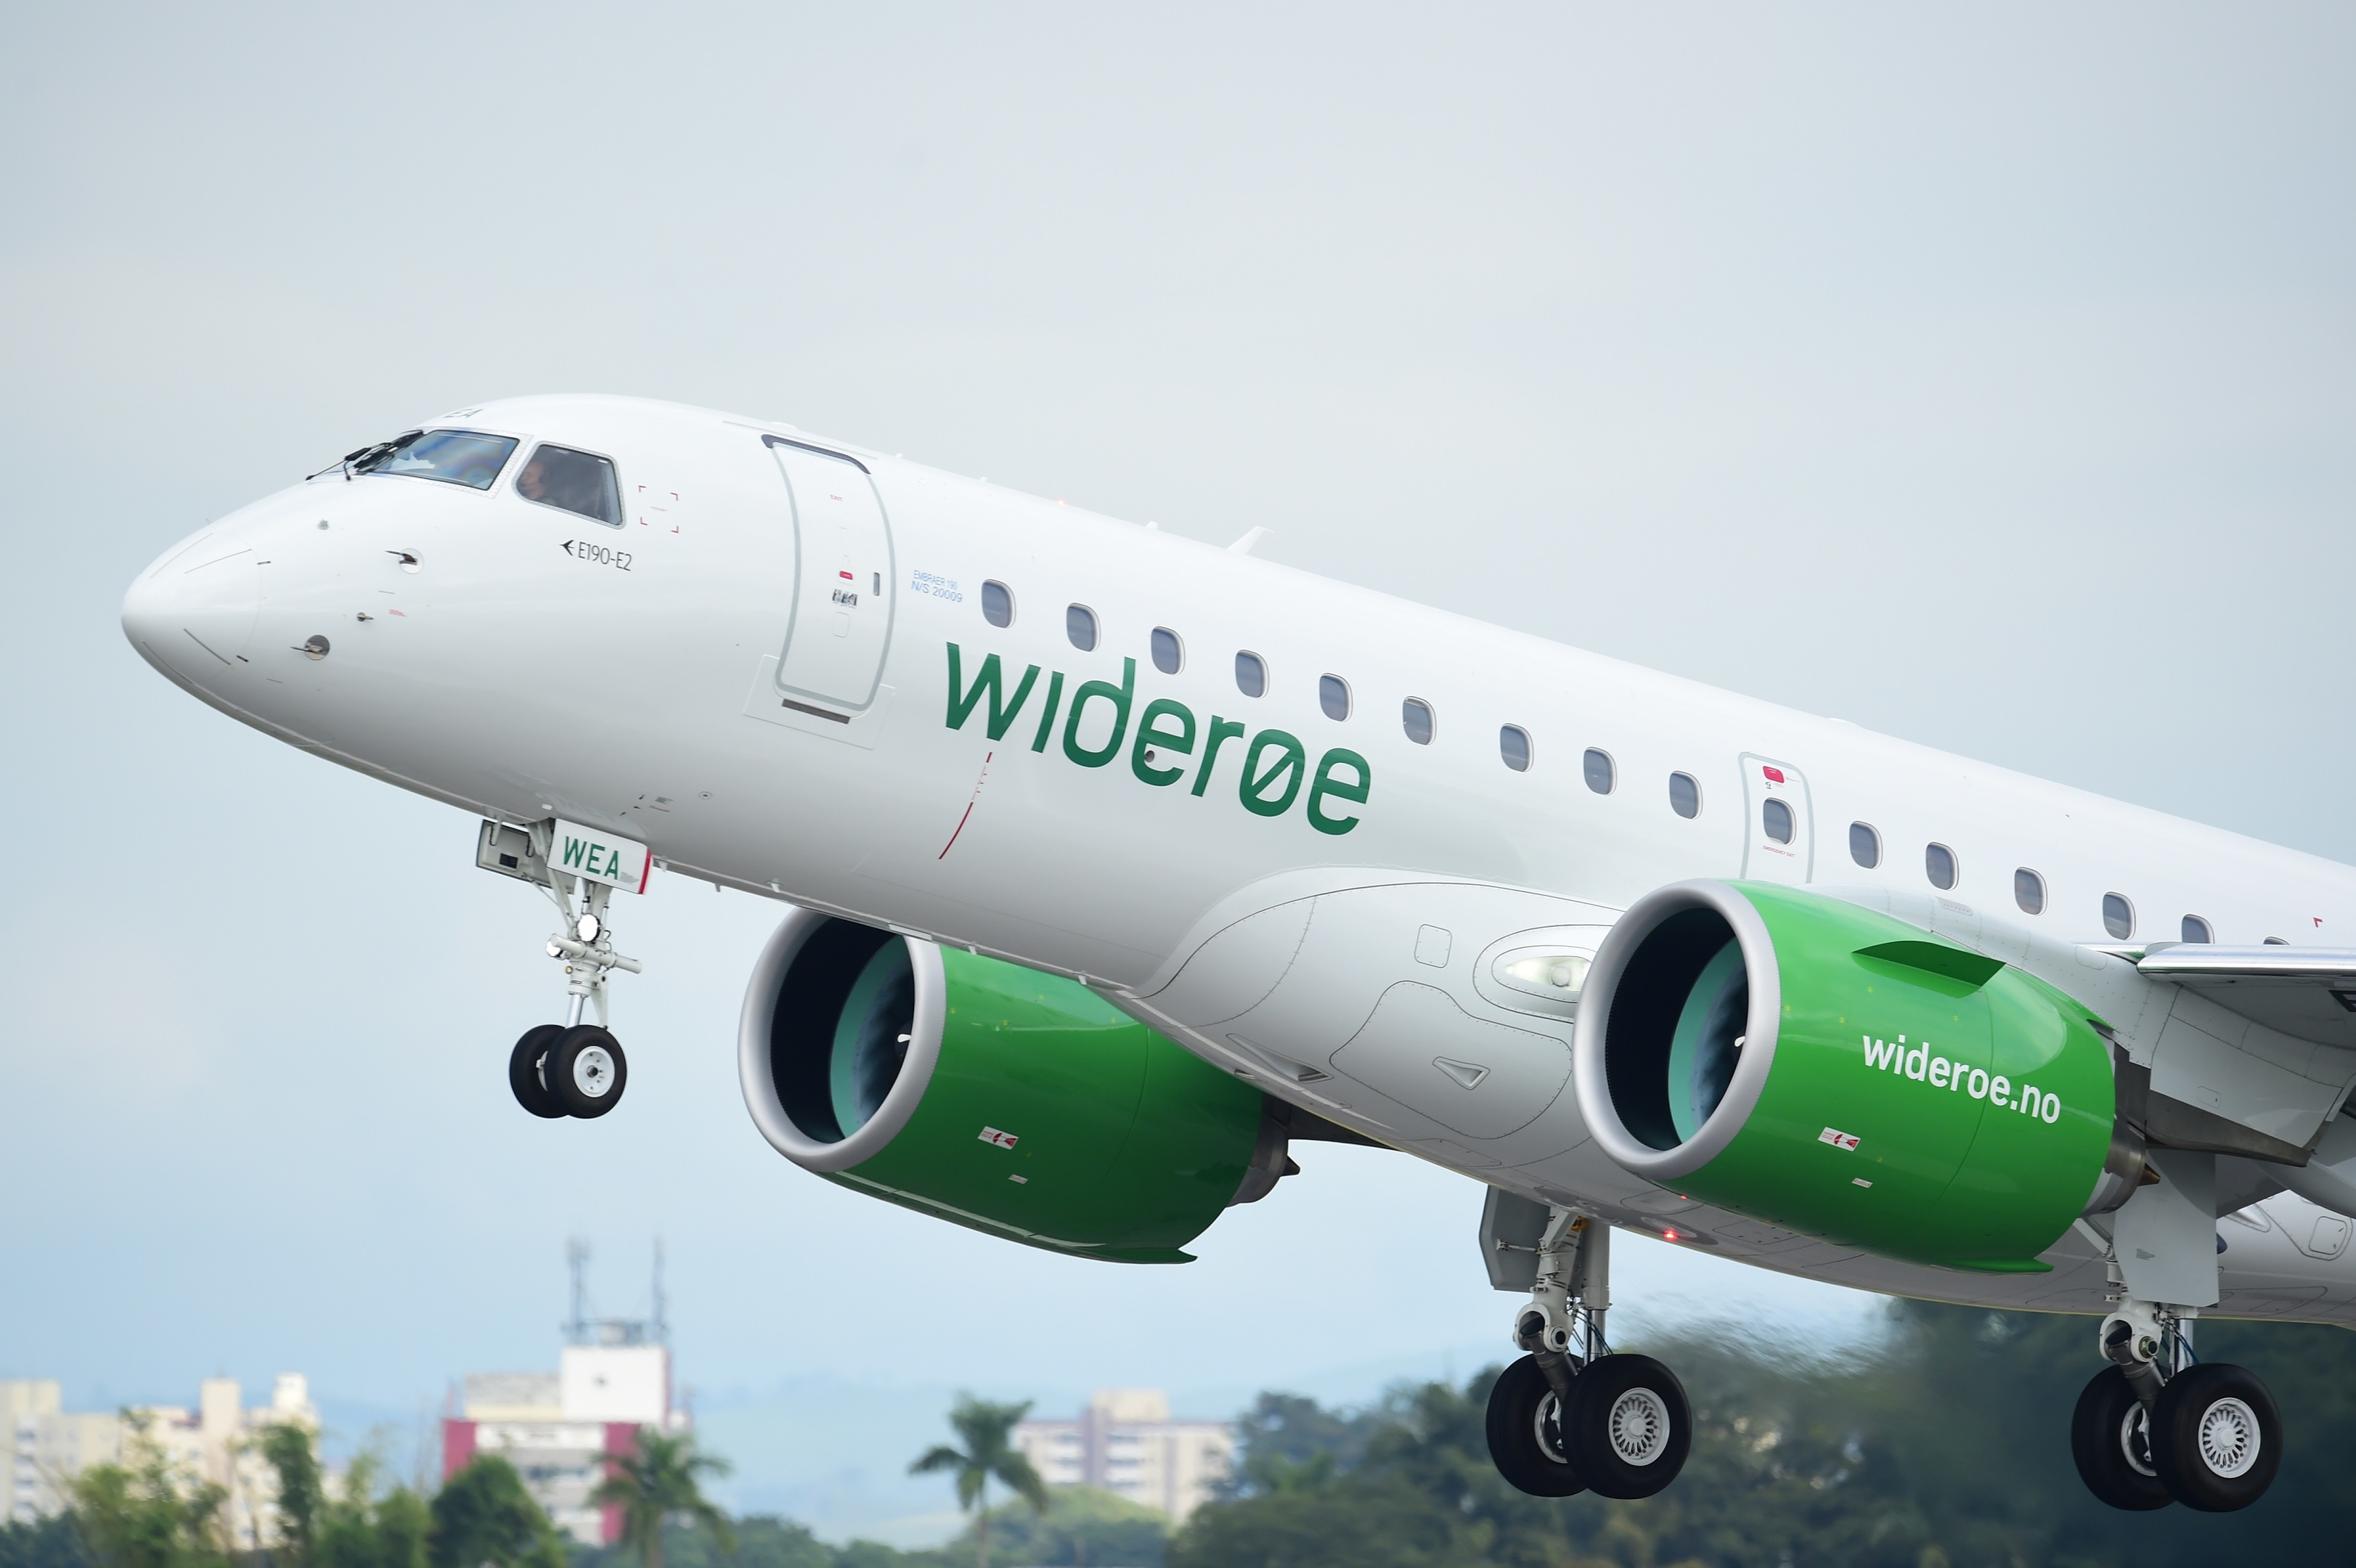 Widerøe's new Embraer E190-E2 jet aircraft